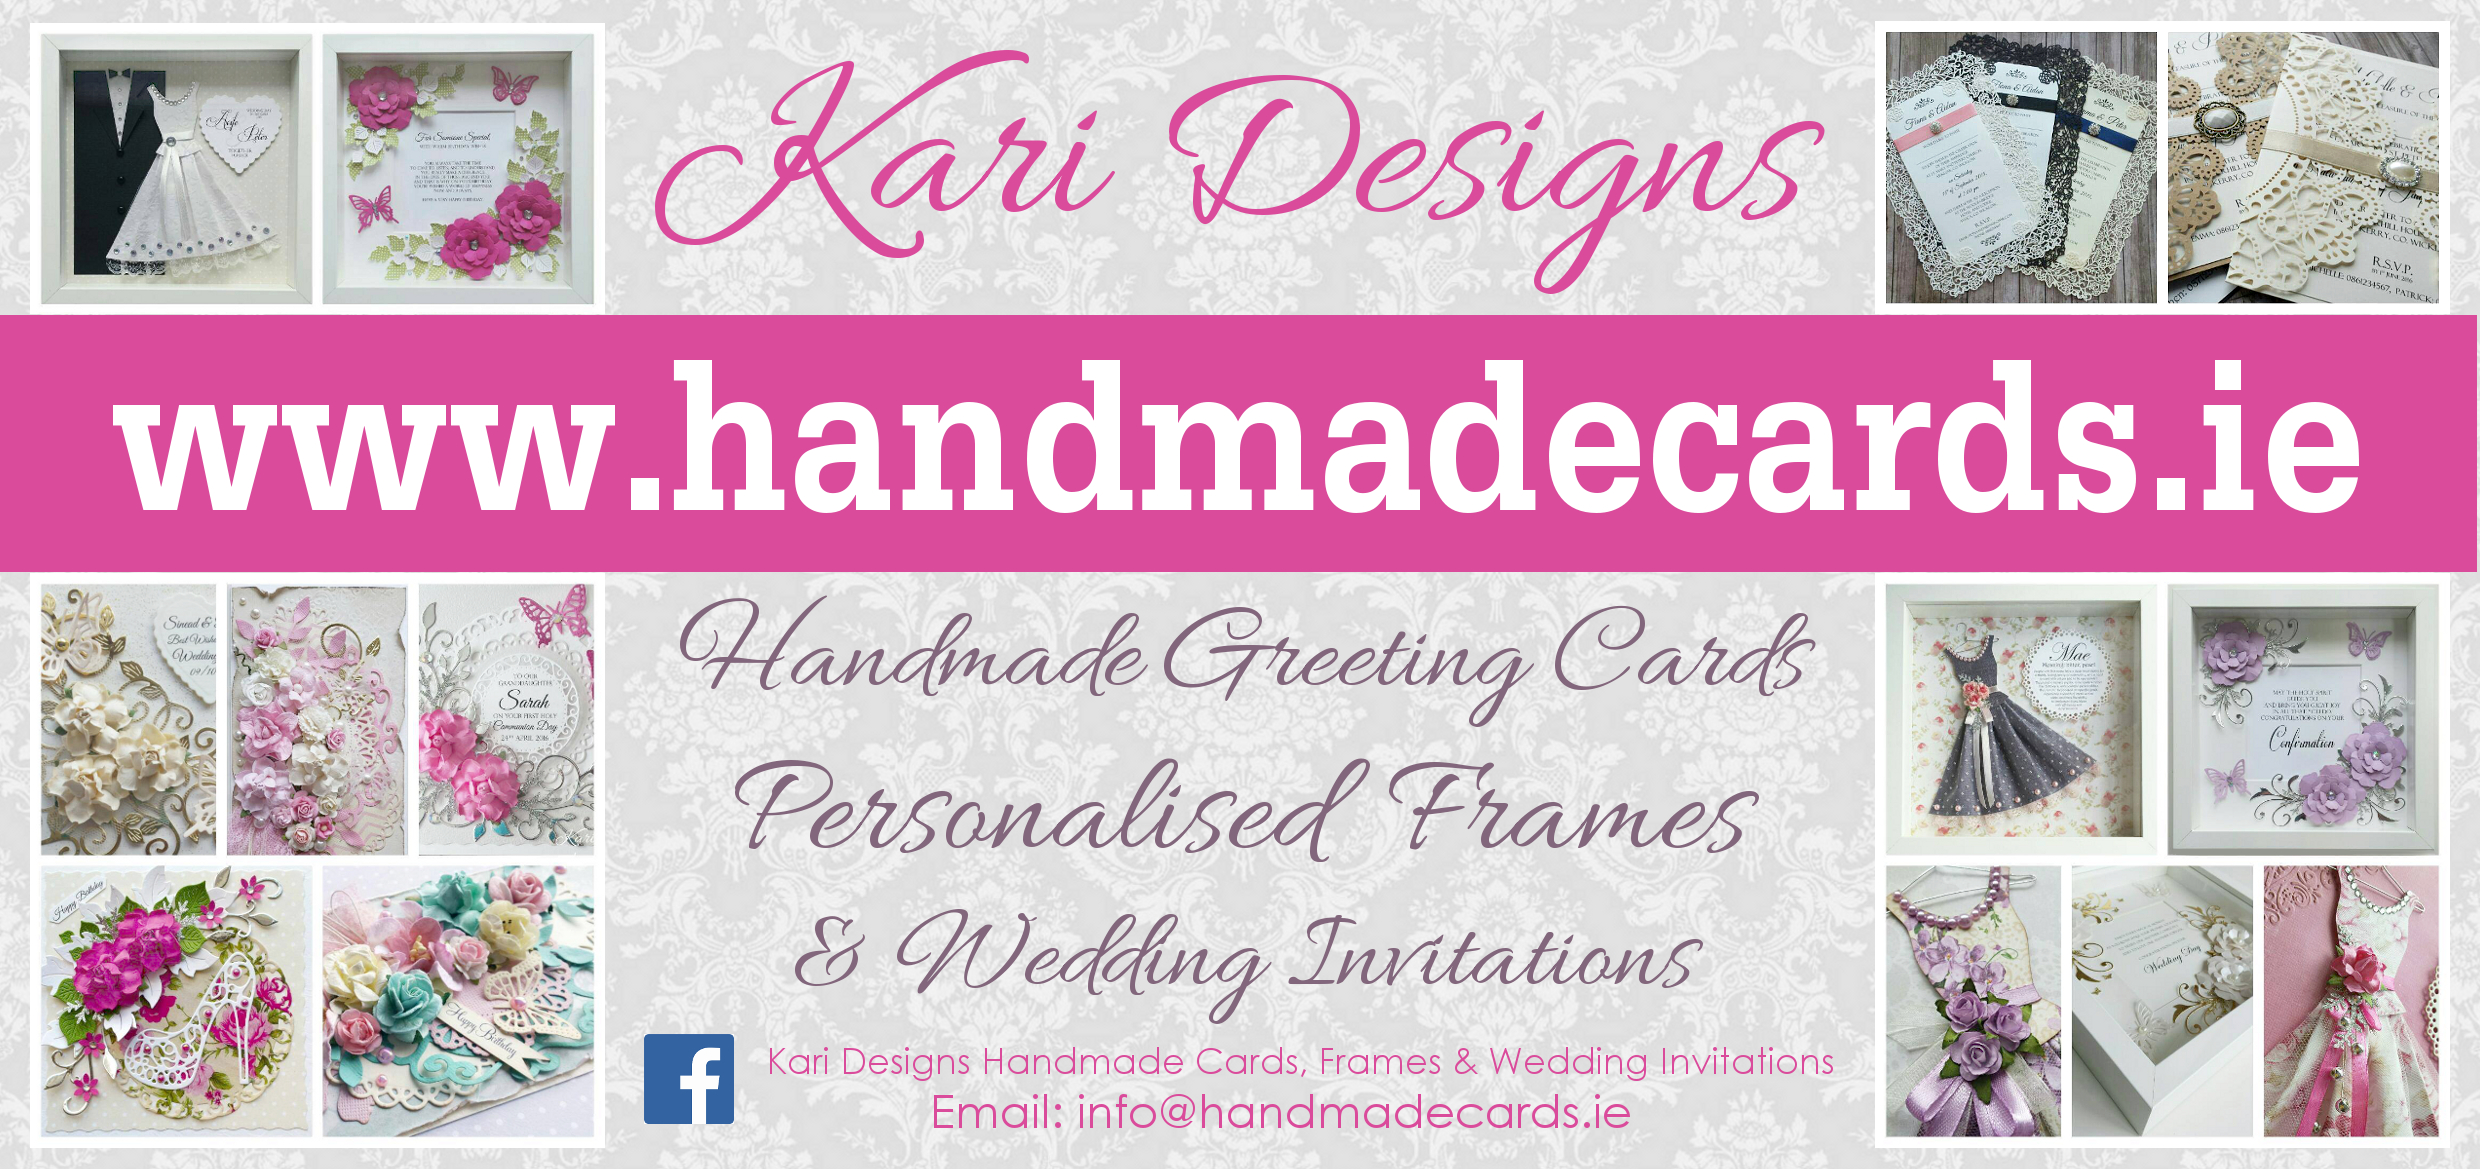 www.handmadecards.ie